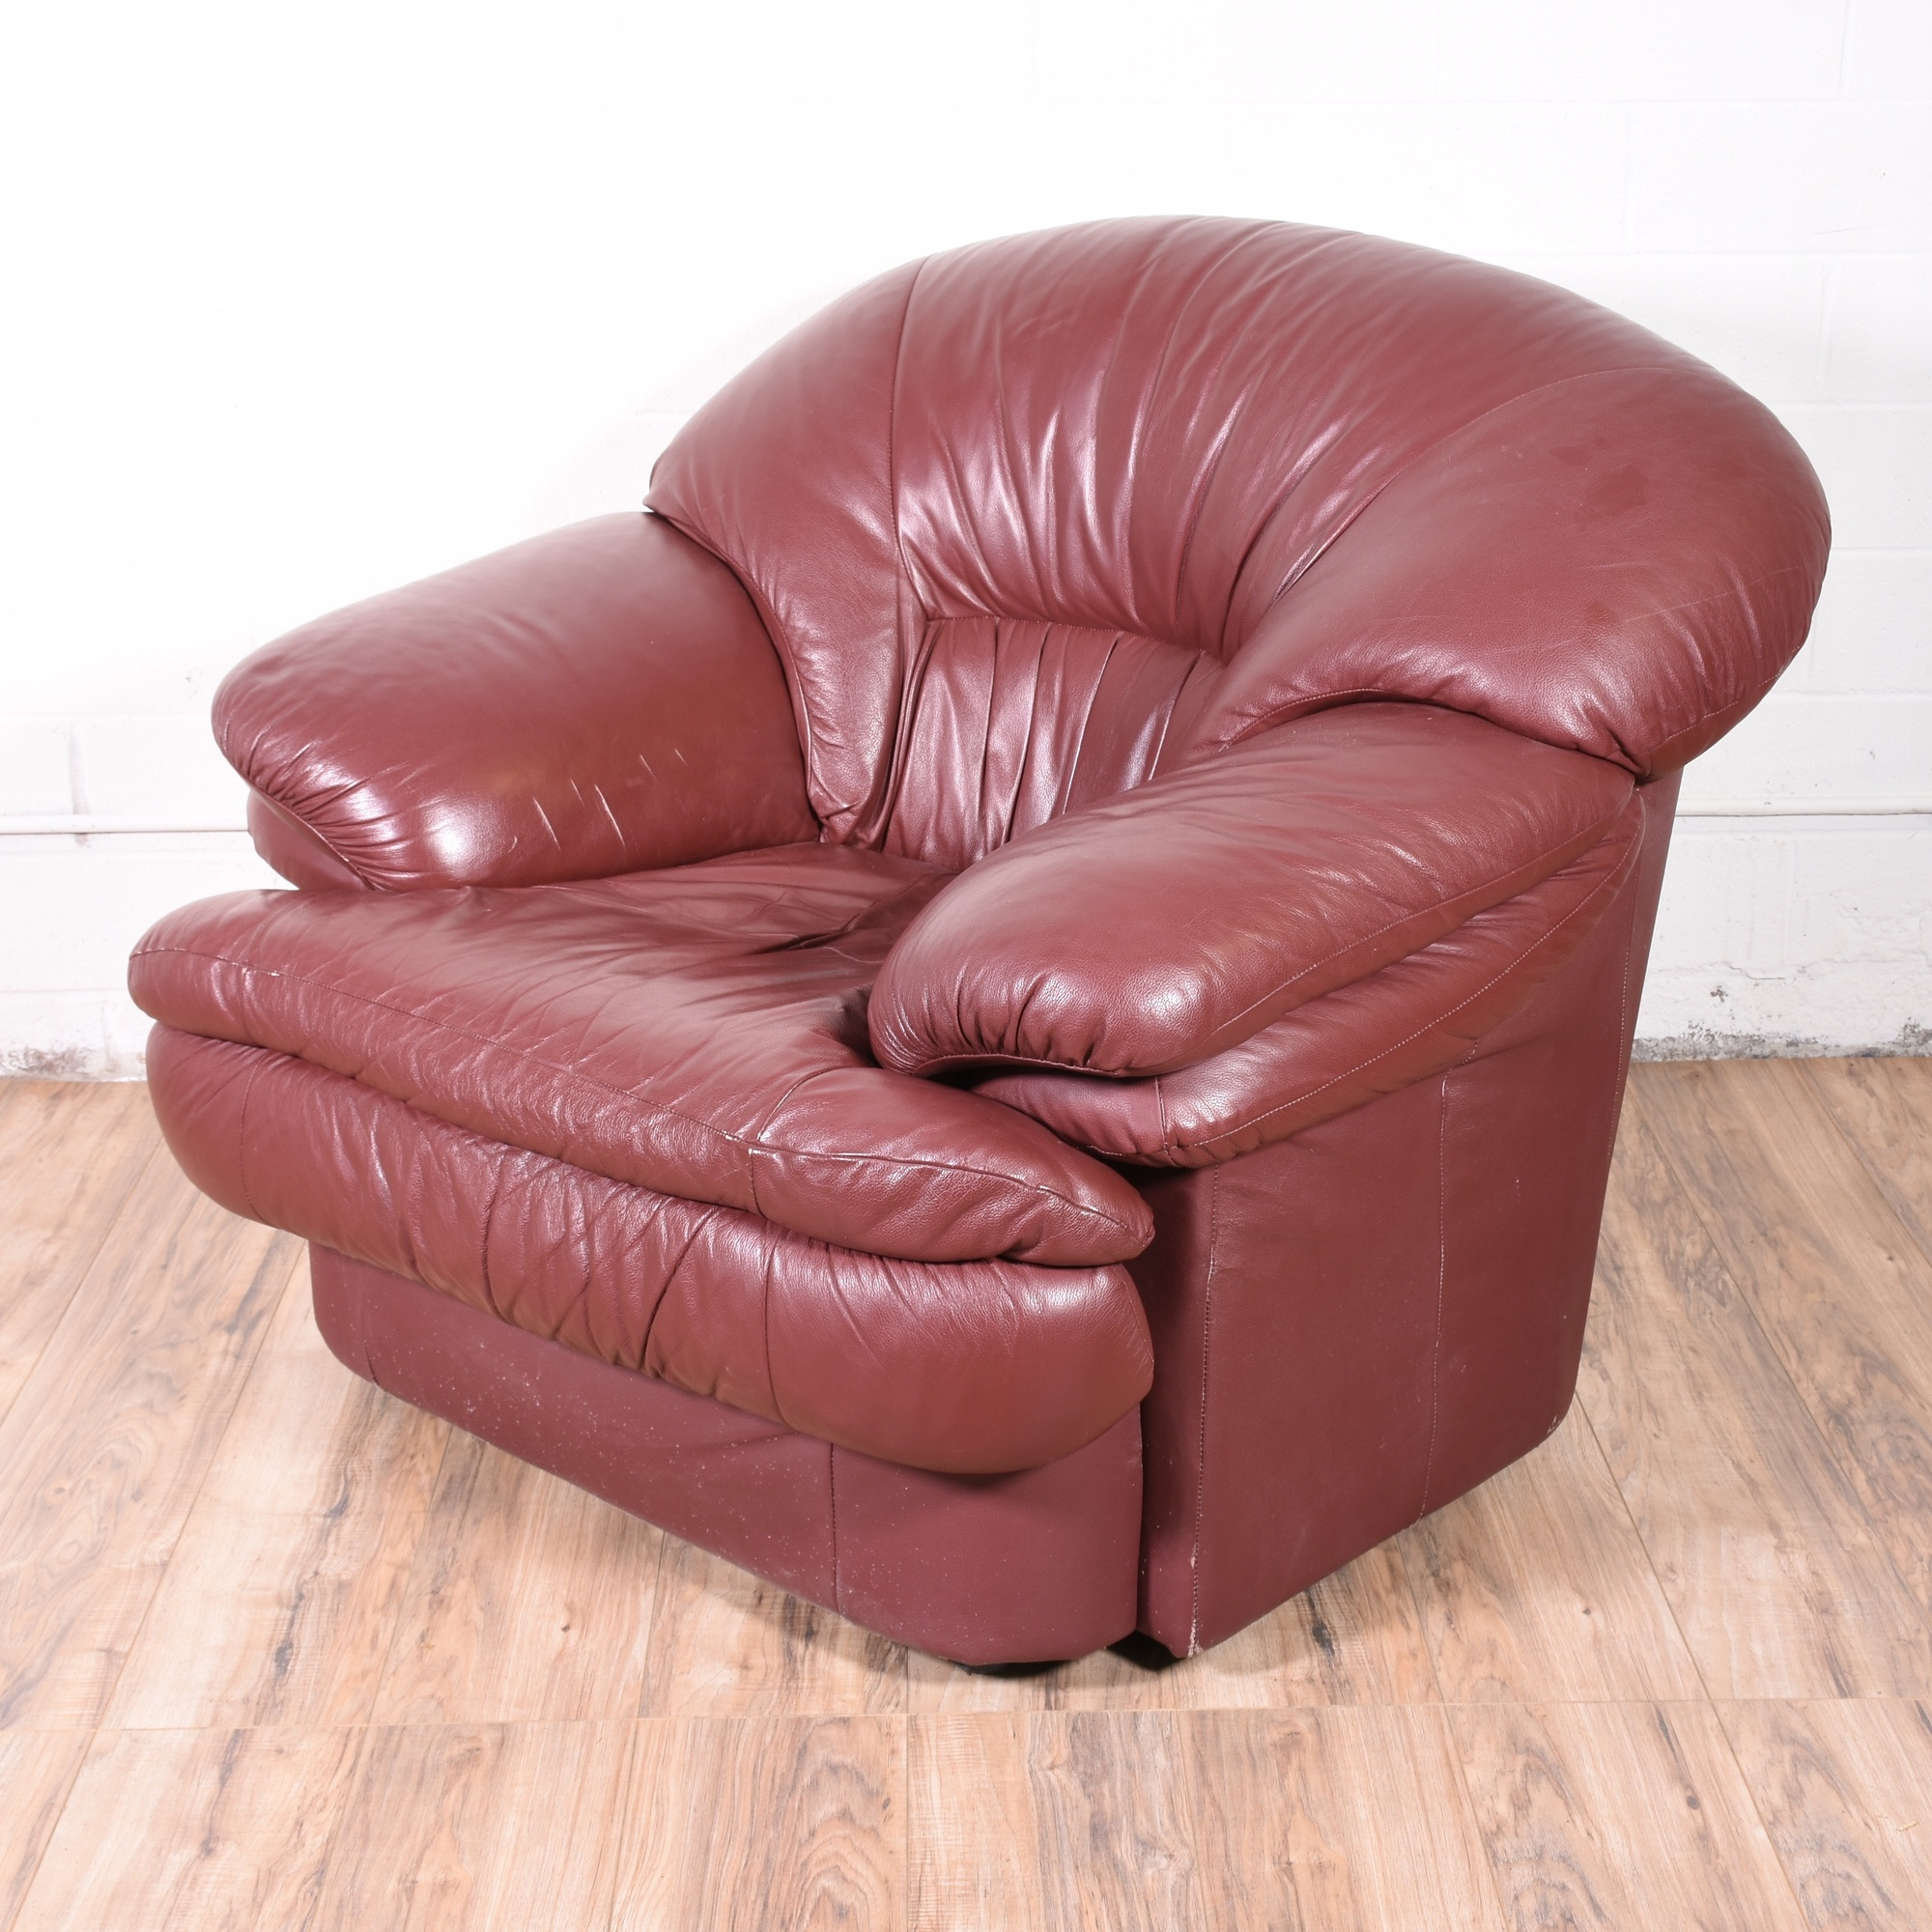 Leather Burgundy Armchair Loveseat Vintage Furniture San Diego Los Angeles